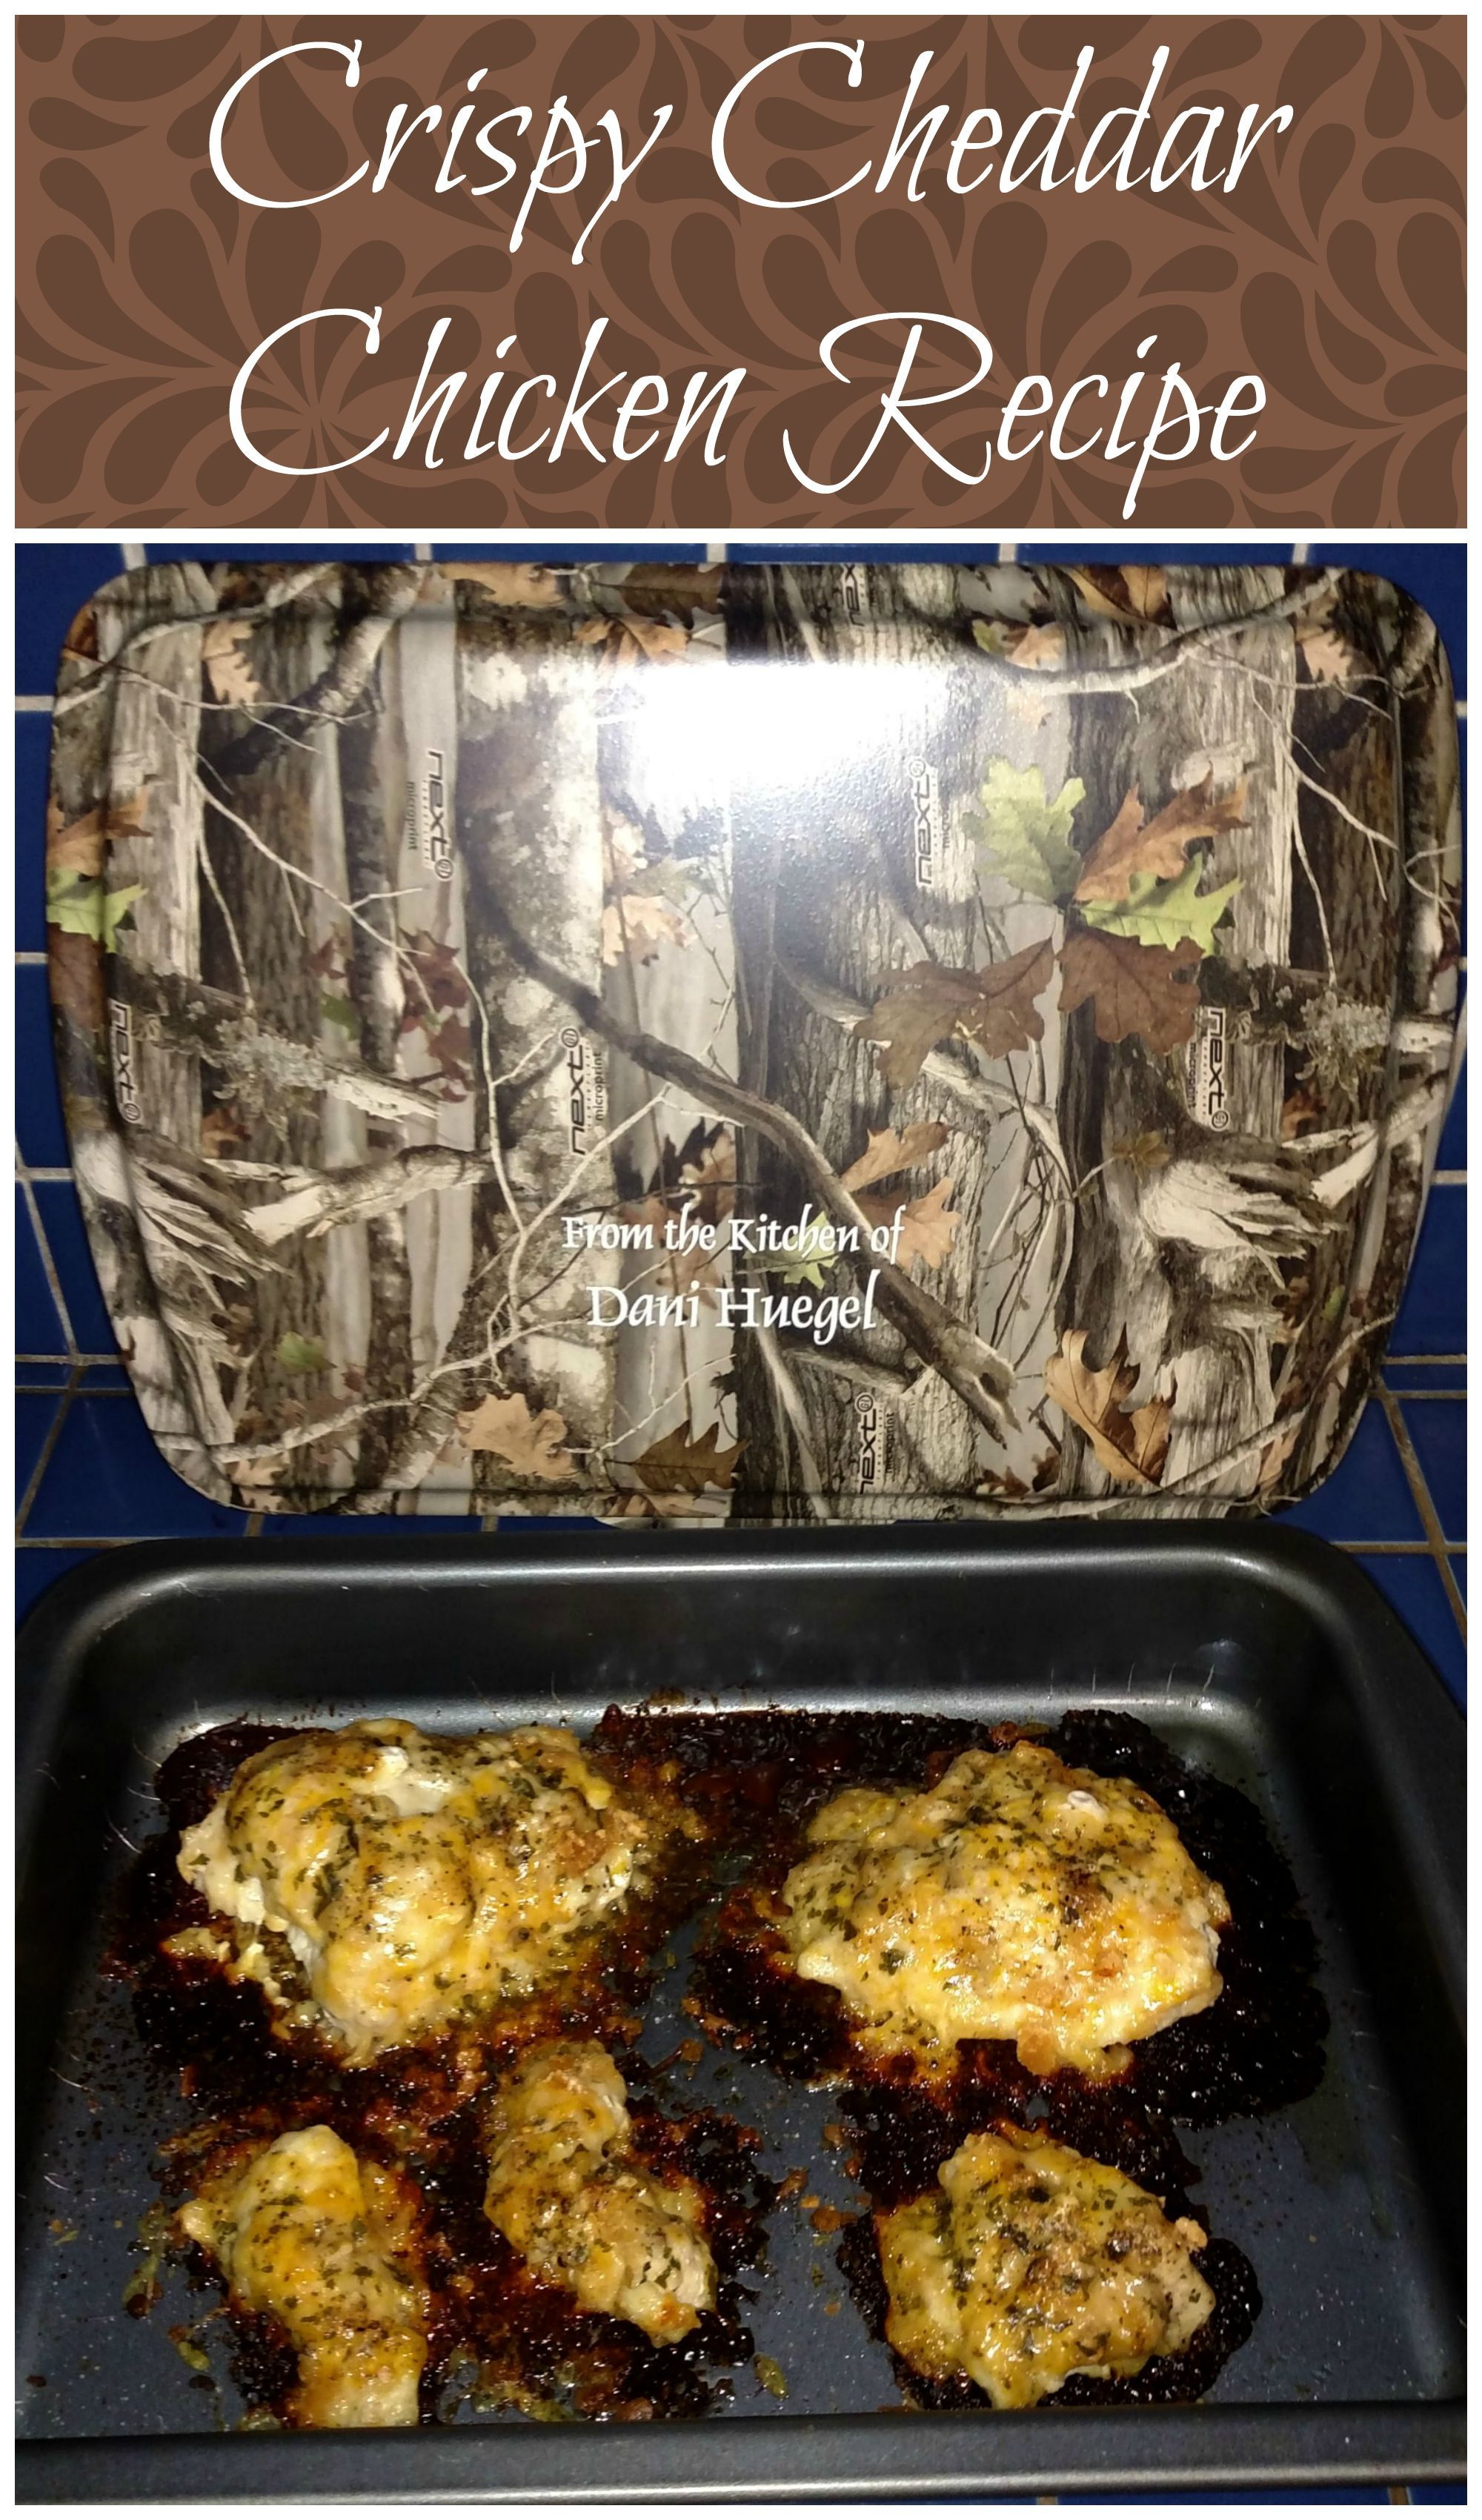 Crispy Cheddar Chicken Recipe with a Cream of Chicken & Mushroom Sauce. Simple and easy and tasty and smile provoking…an all around treasure. Love baking in our Personalized Camouflage 9x13 Non Stick Pan & Lid!